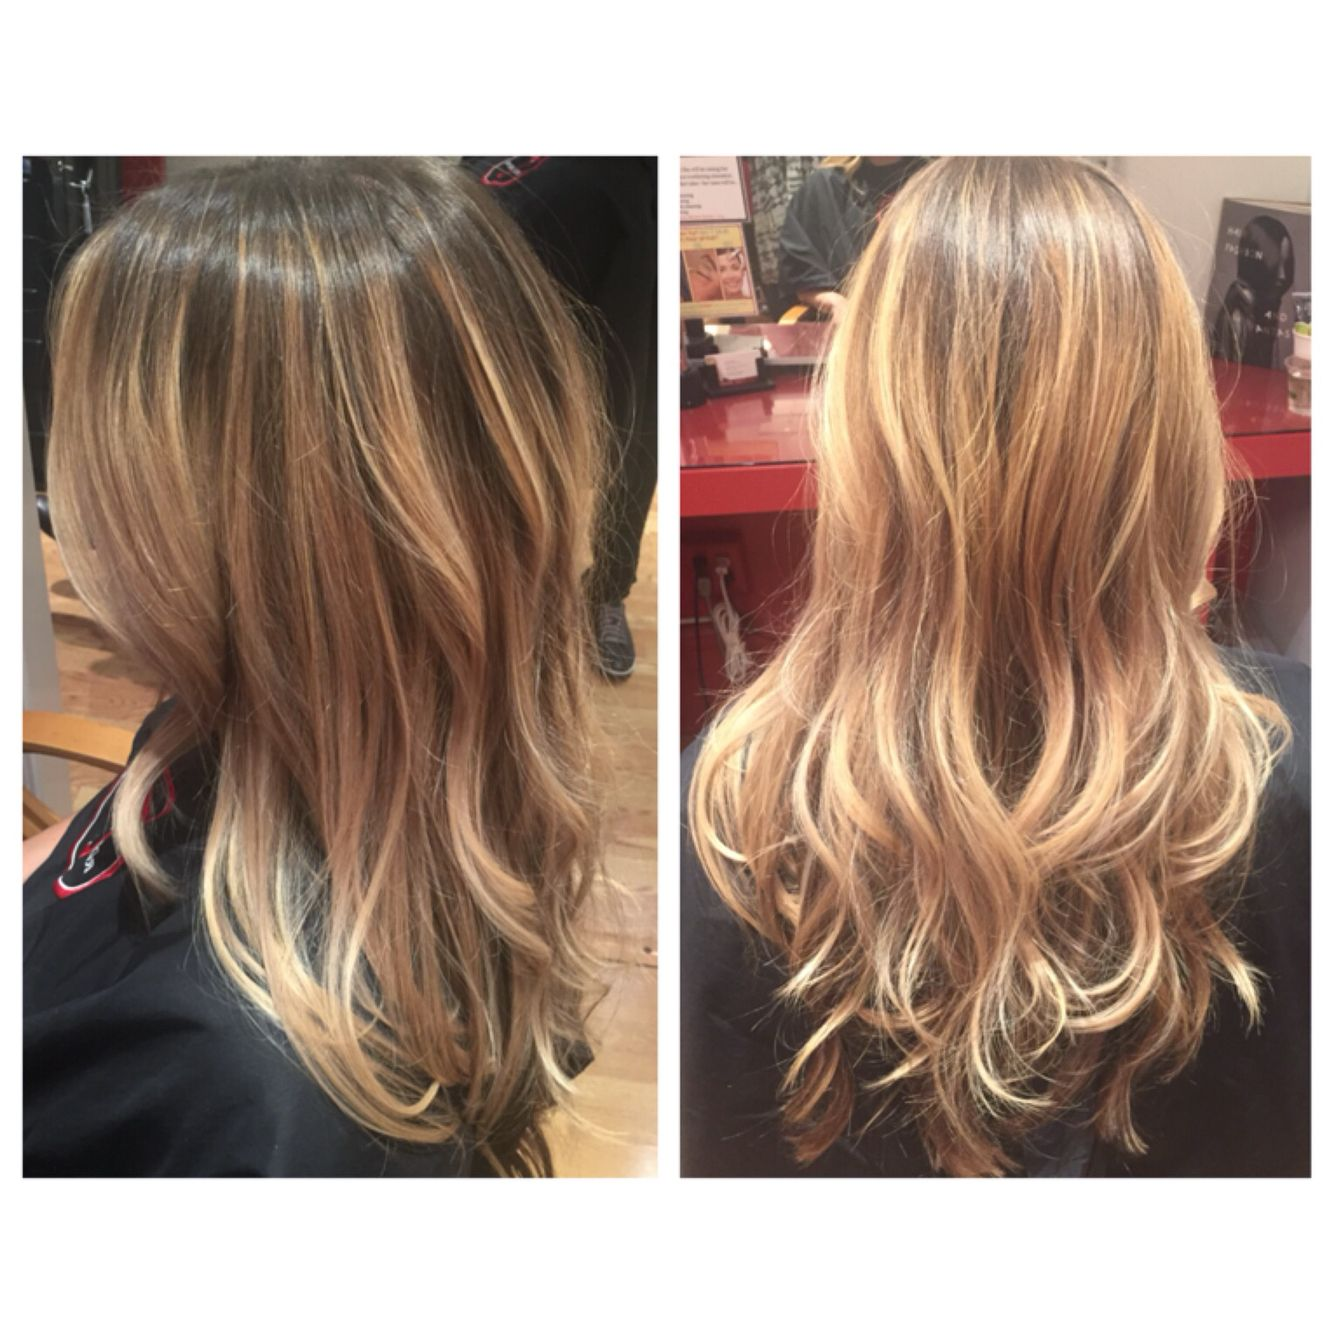 Balayage Hair Painting Subtle Ombr Hair Color Cut By Natalie